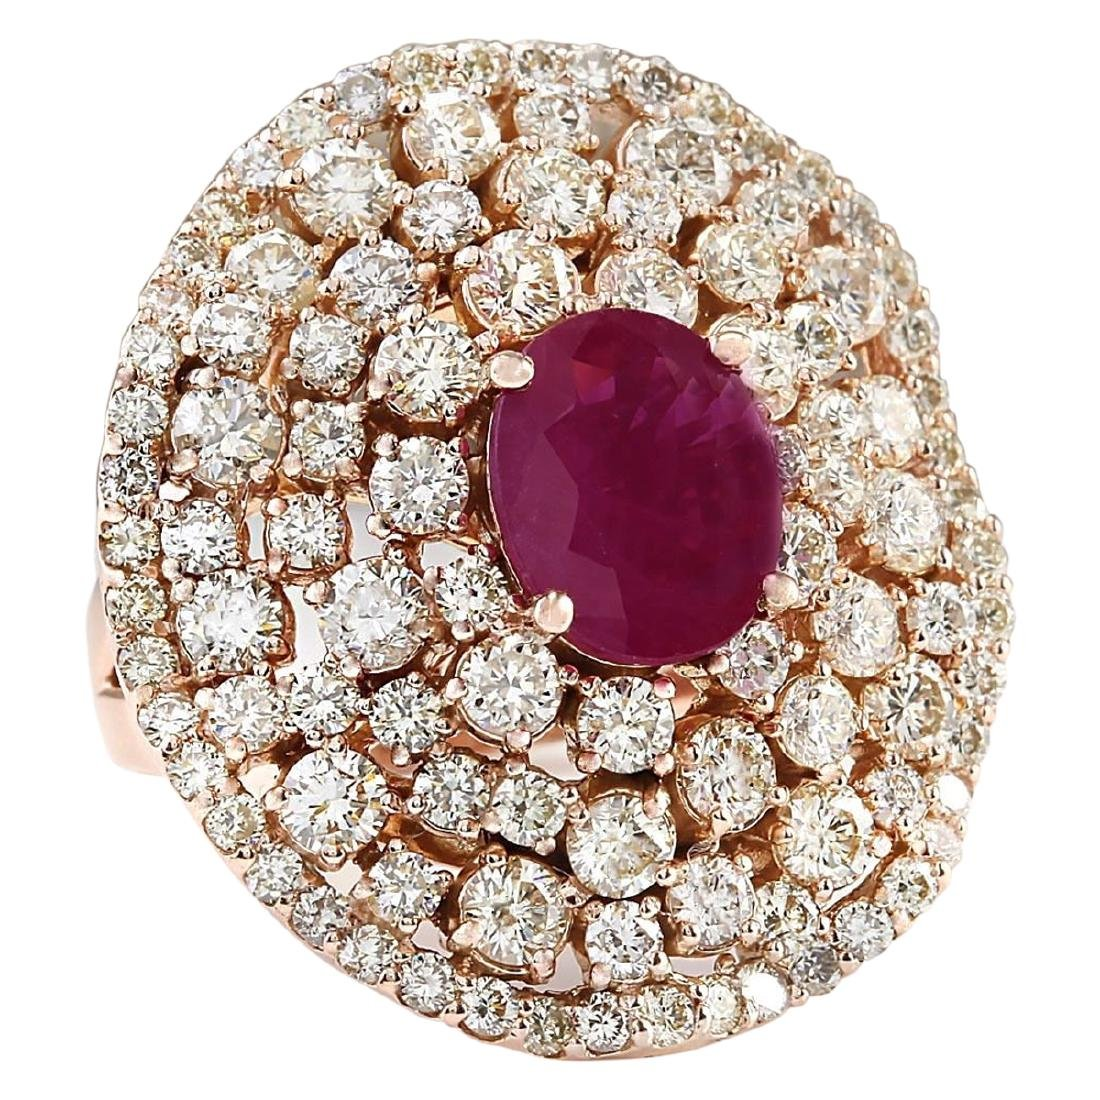 5.98 CTW Natural Ruby And Diamond Ring In 18K Rose Gold - 2